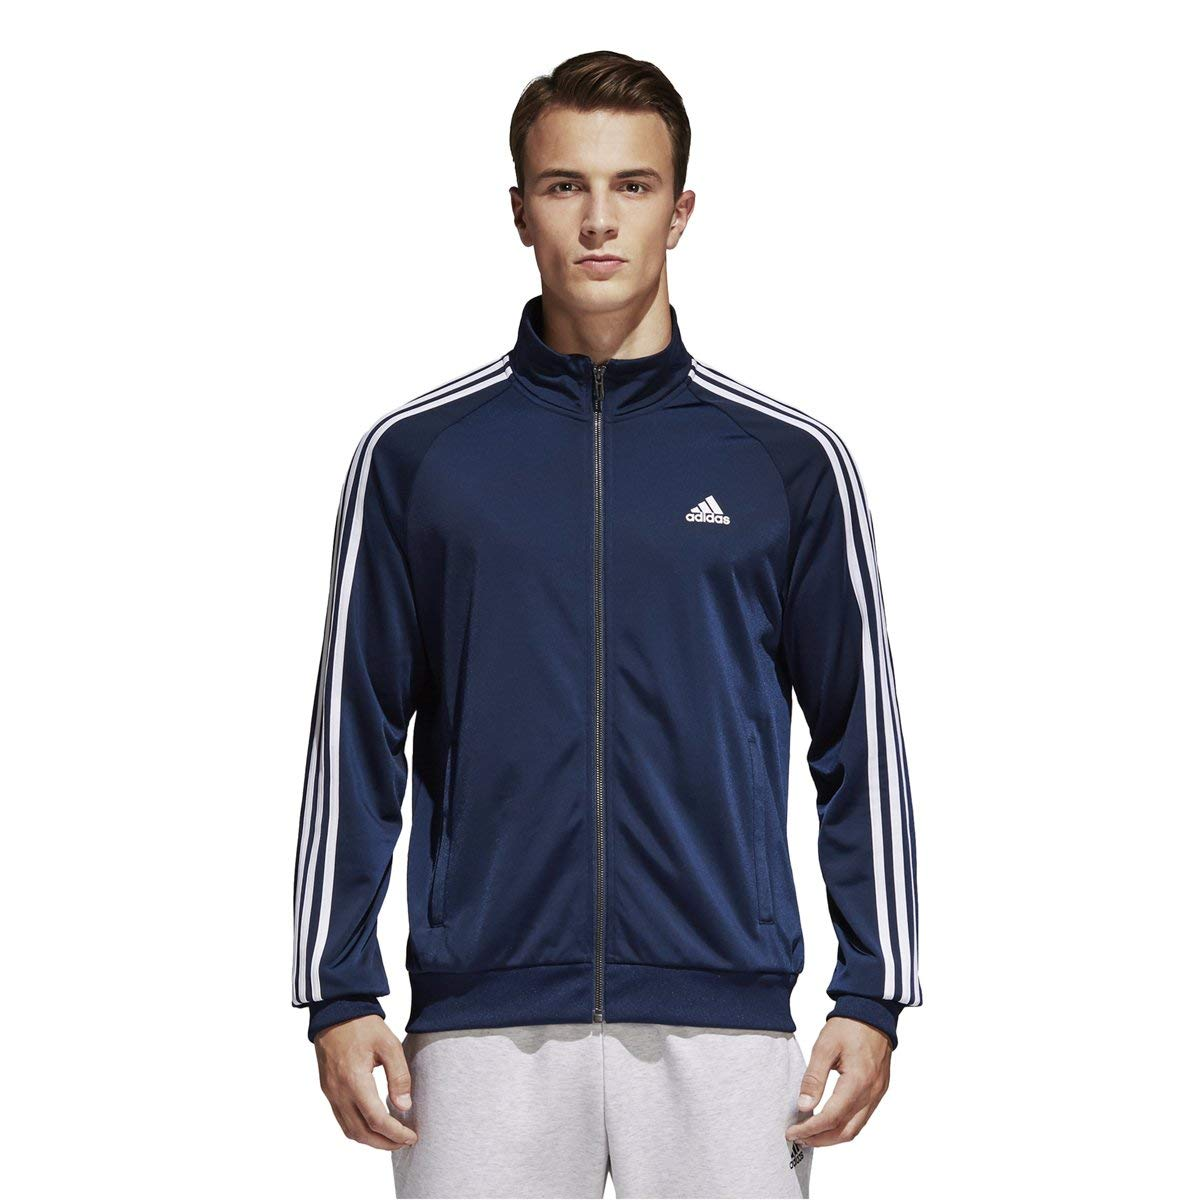 adidas Men's Essentials 3-Stripe Tricot Track Jacket, Collegiate Navy/White, Small by adidas